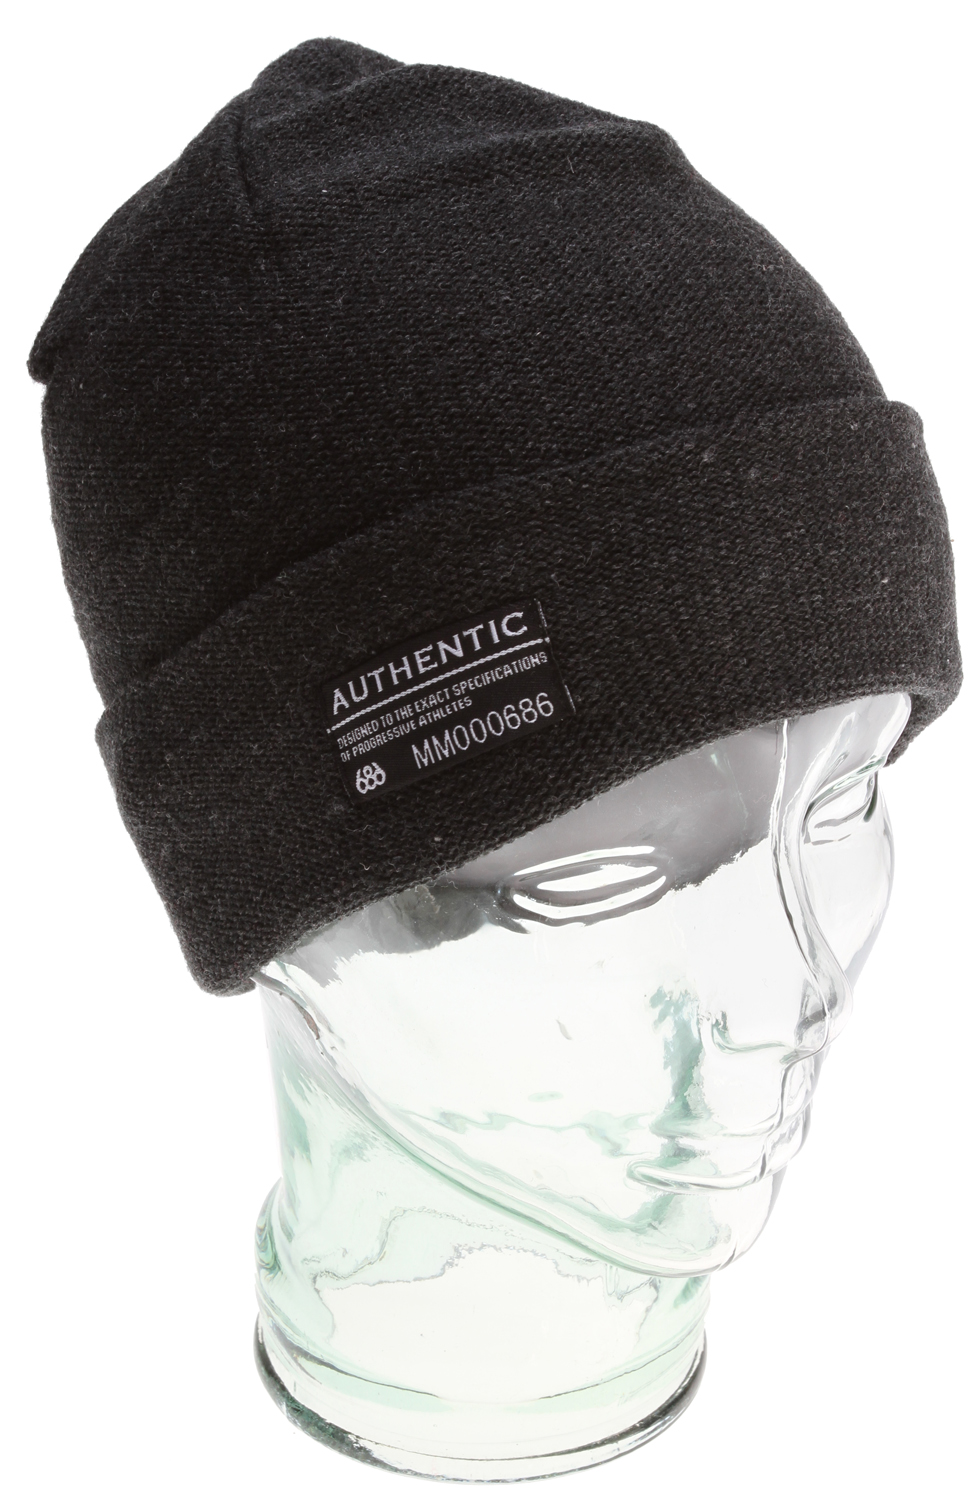 Key Features of the 686 Motley Beanie: 100% Acrylic knit OSFM - $19.95